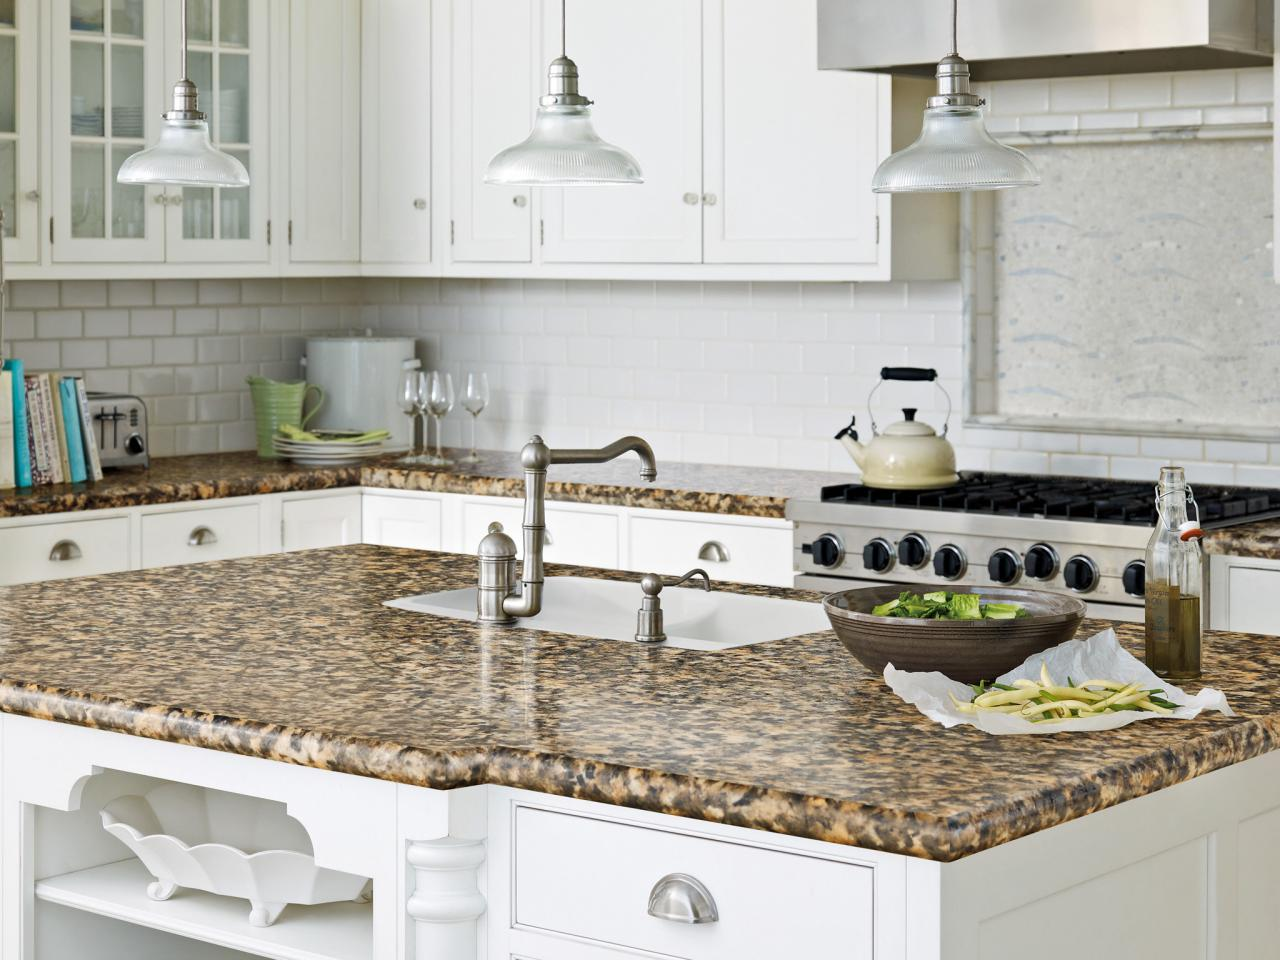 Laminate Kitchen Countertops: Pictures & Ideas From HGTV | HGTV